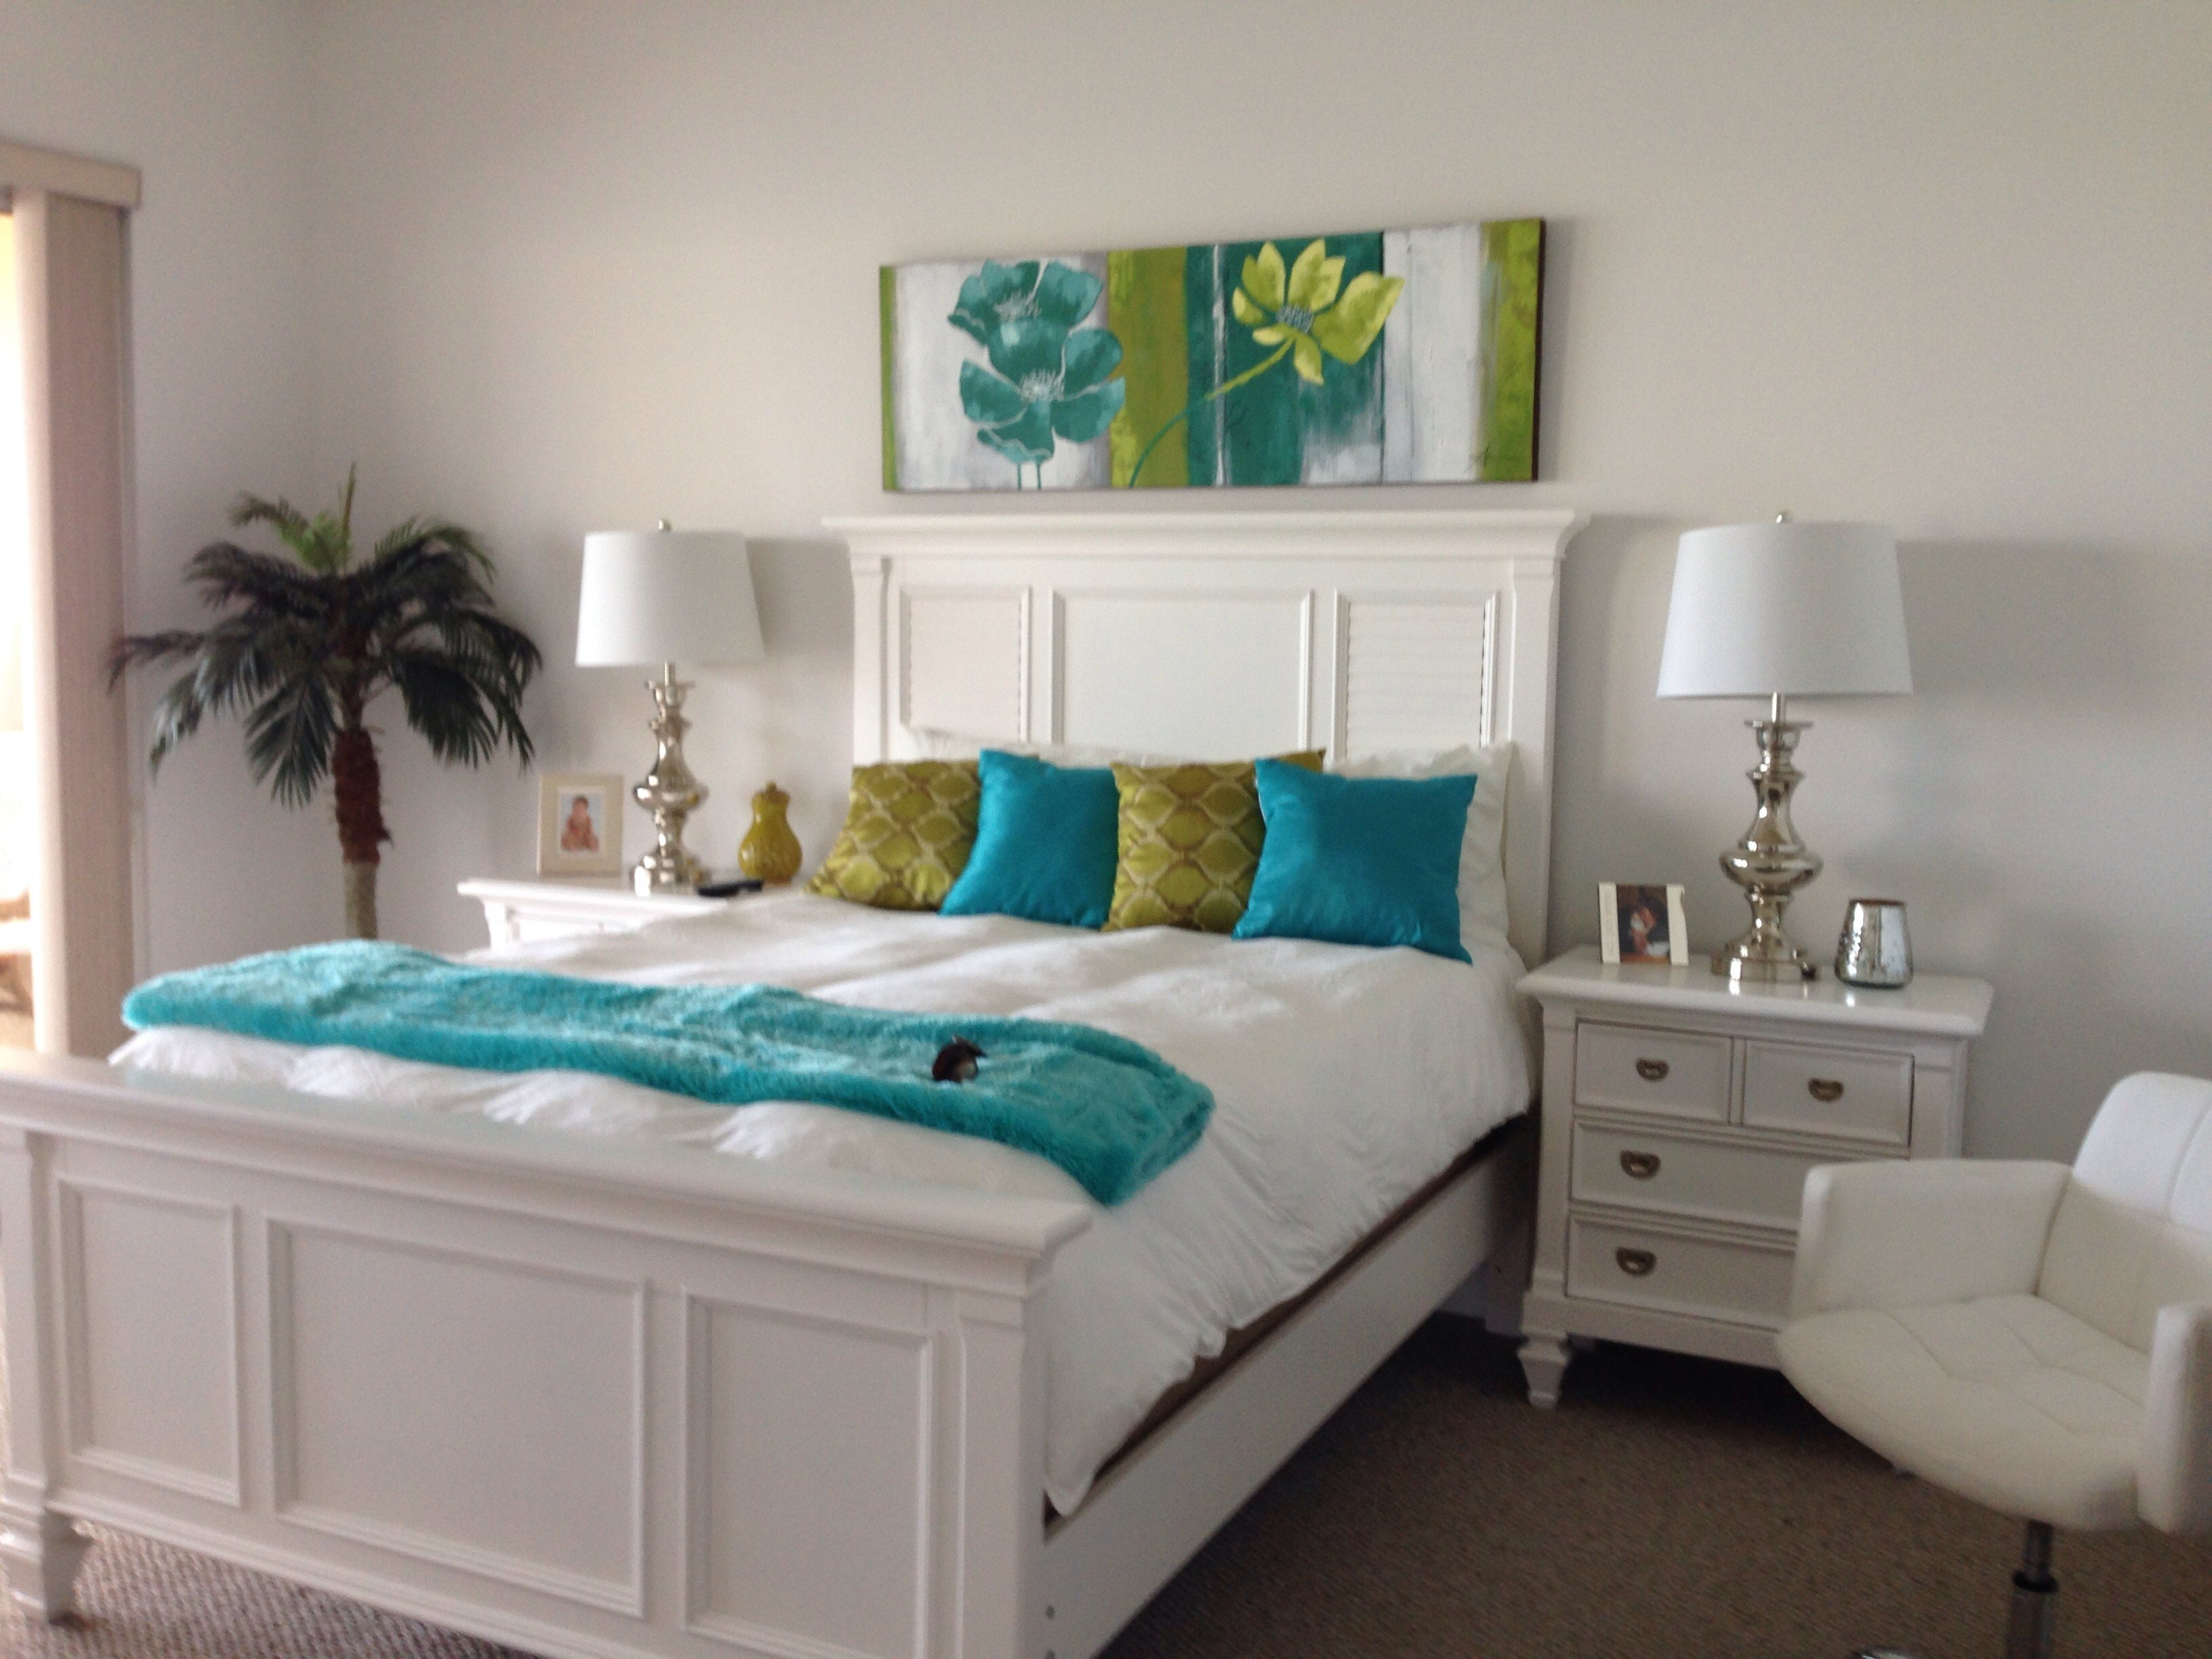 Best Nice Romantic Bedroom Makeover On A Budget 72 Remodel Home With Pictures